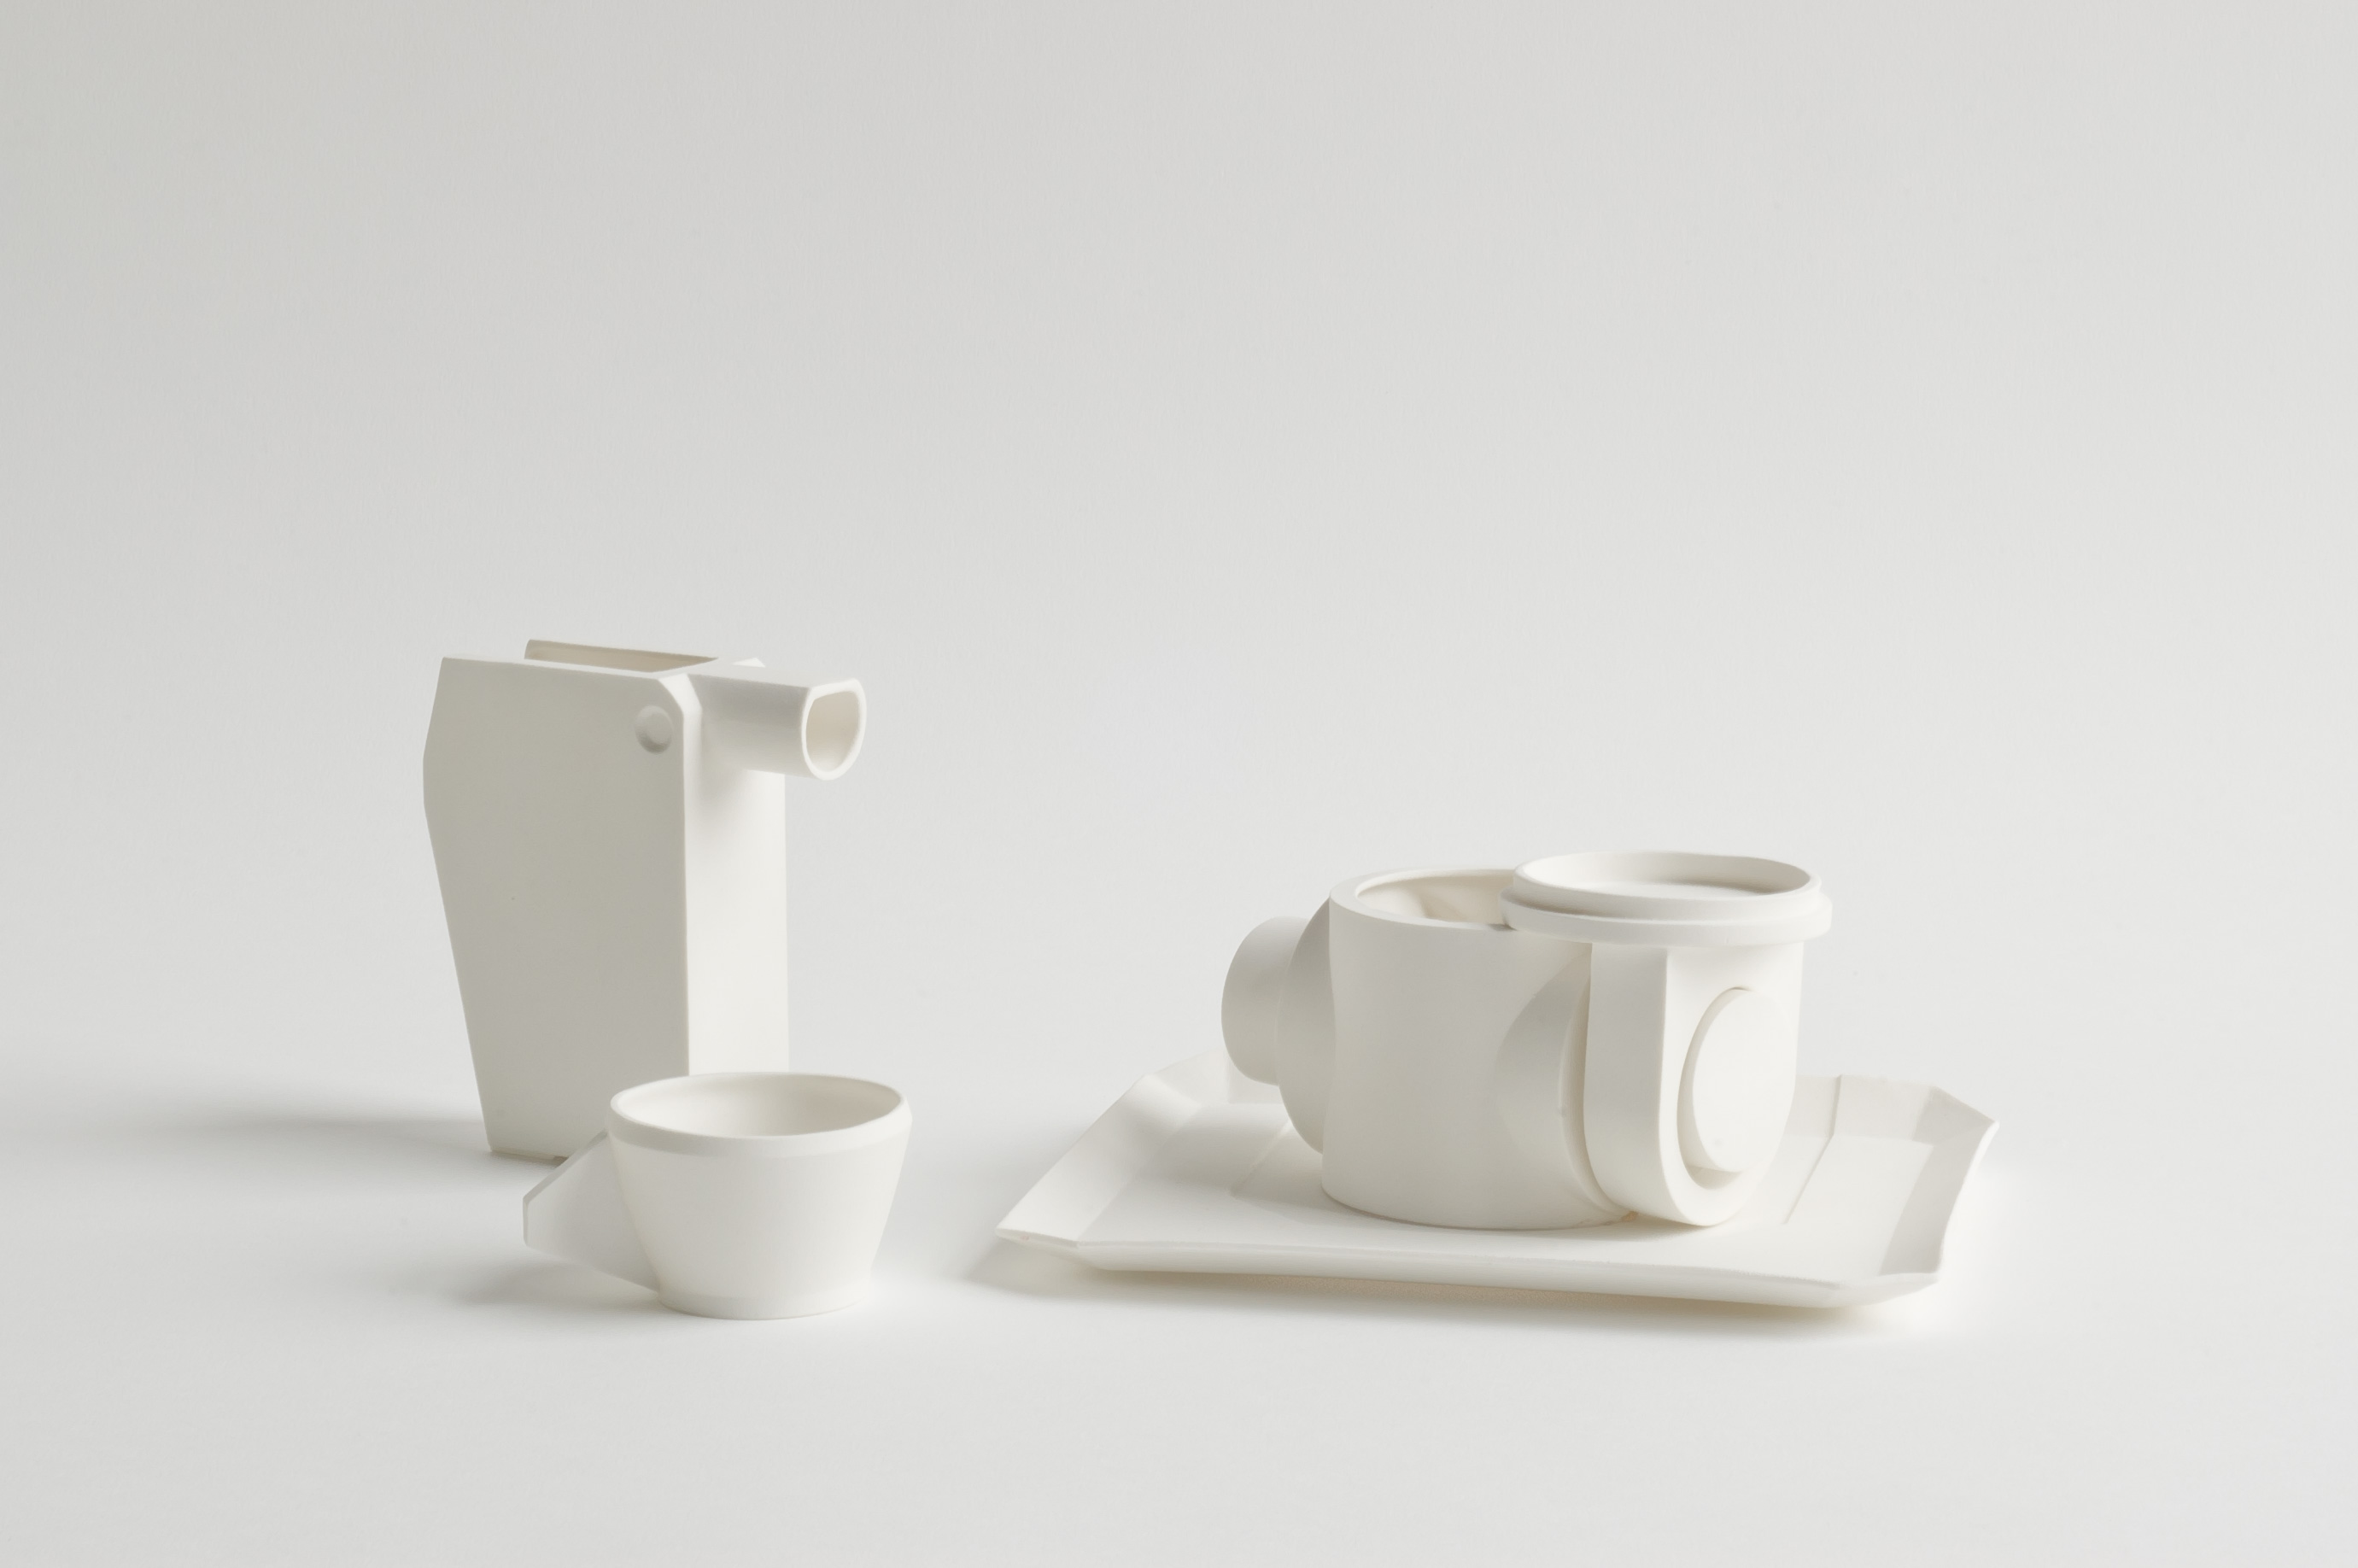 a7_minalemaeda_manufactured_ceramics_mdby_mdba_cadcam_tableware_bisque2